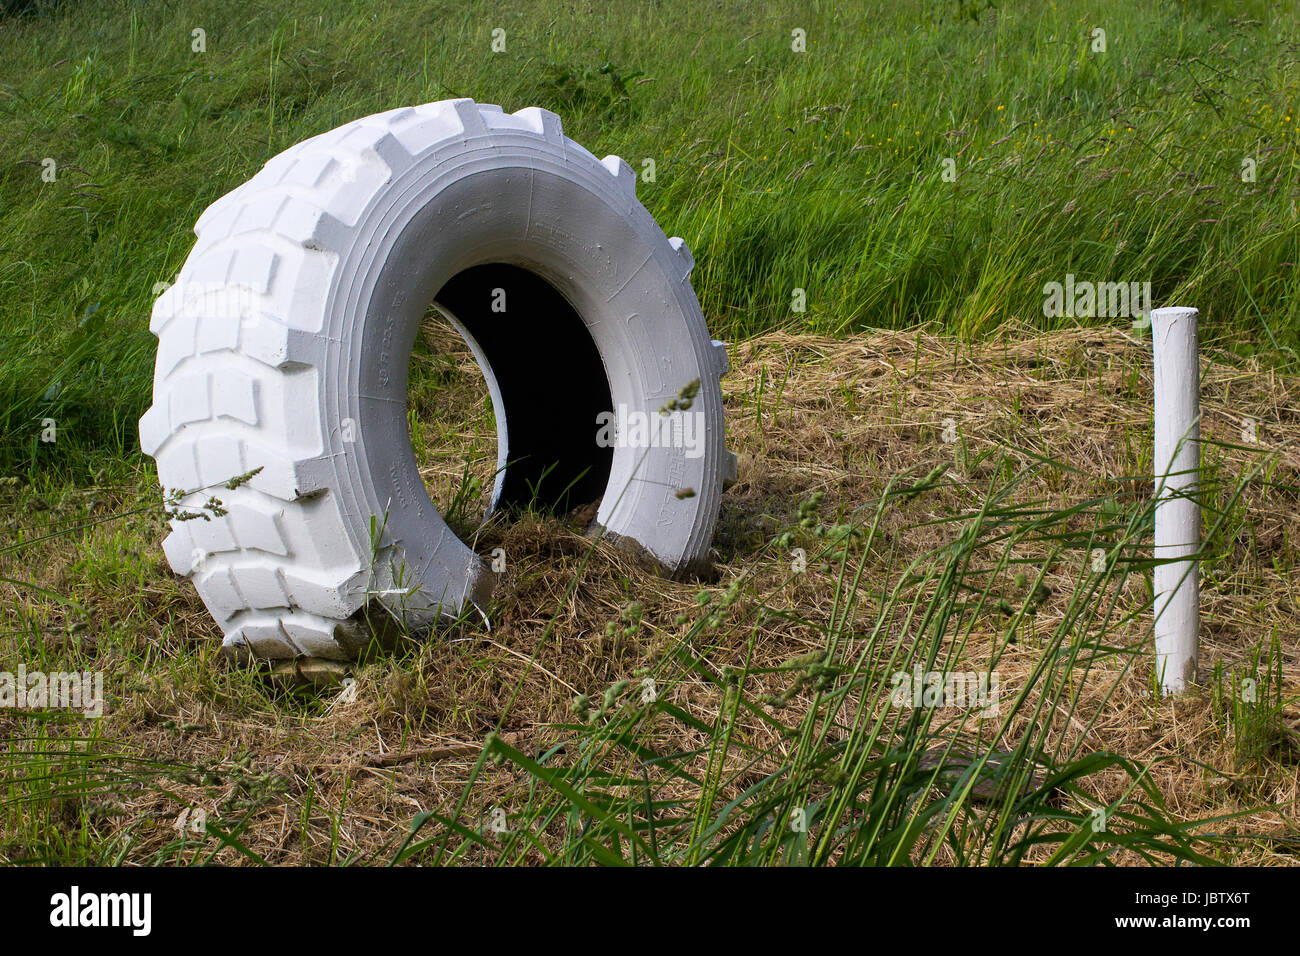 A large whitened rear axle tractor tyre and a wooden stake used as a marker in a farm field in Hampshire, England - Stock Image